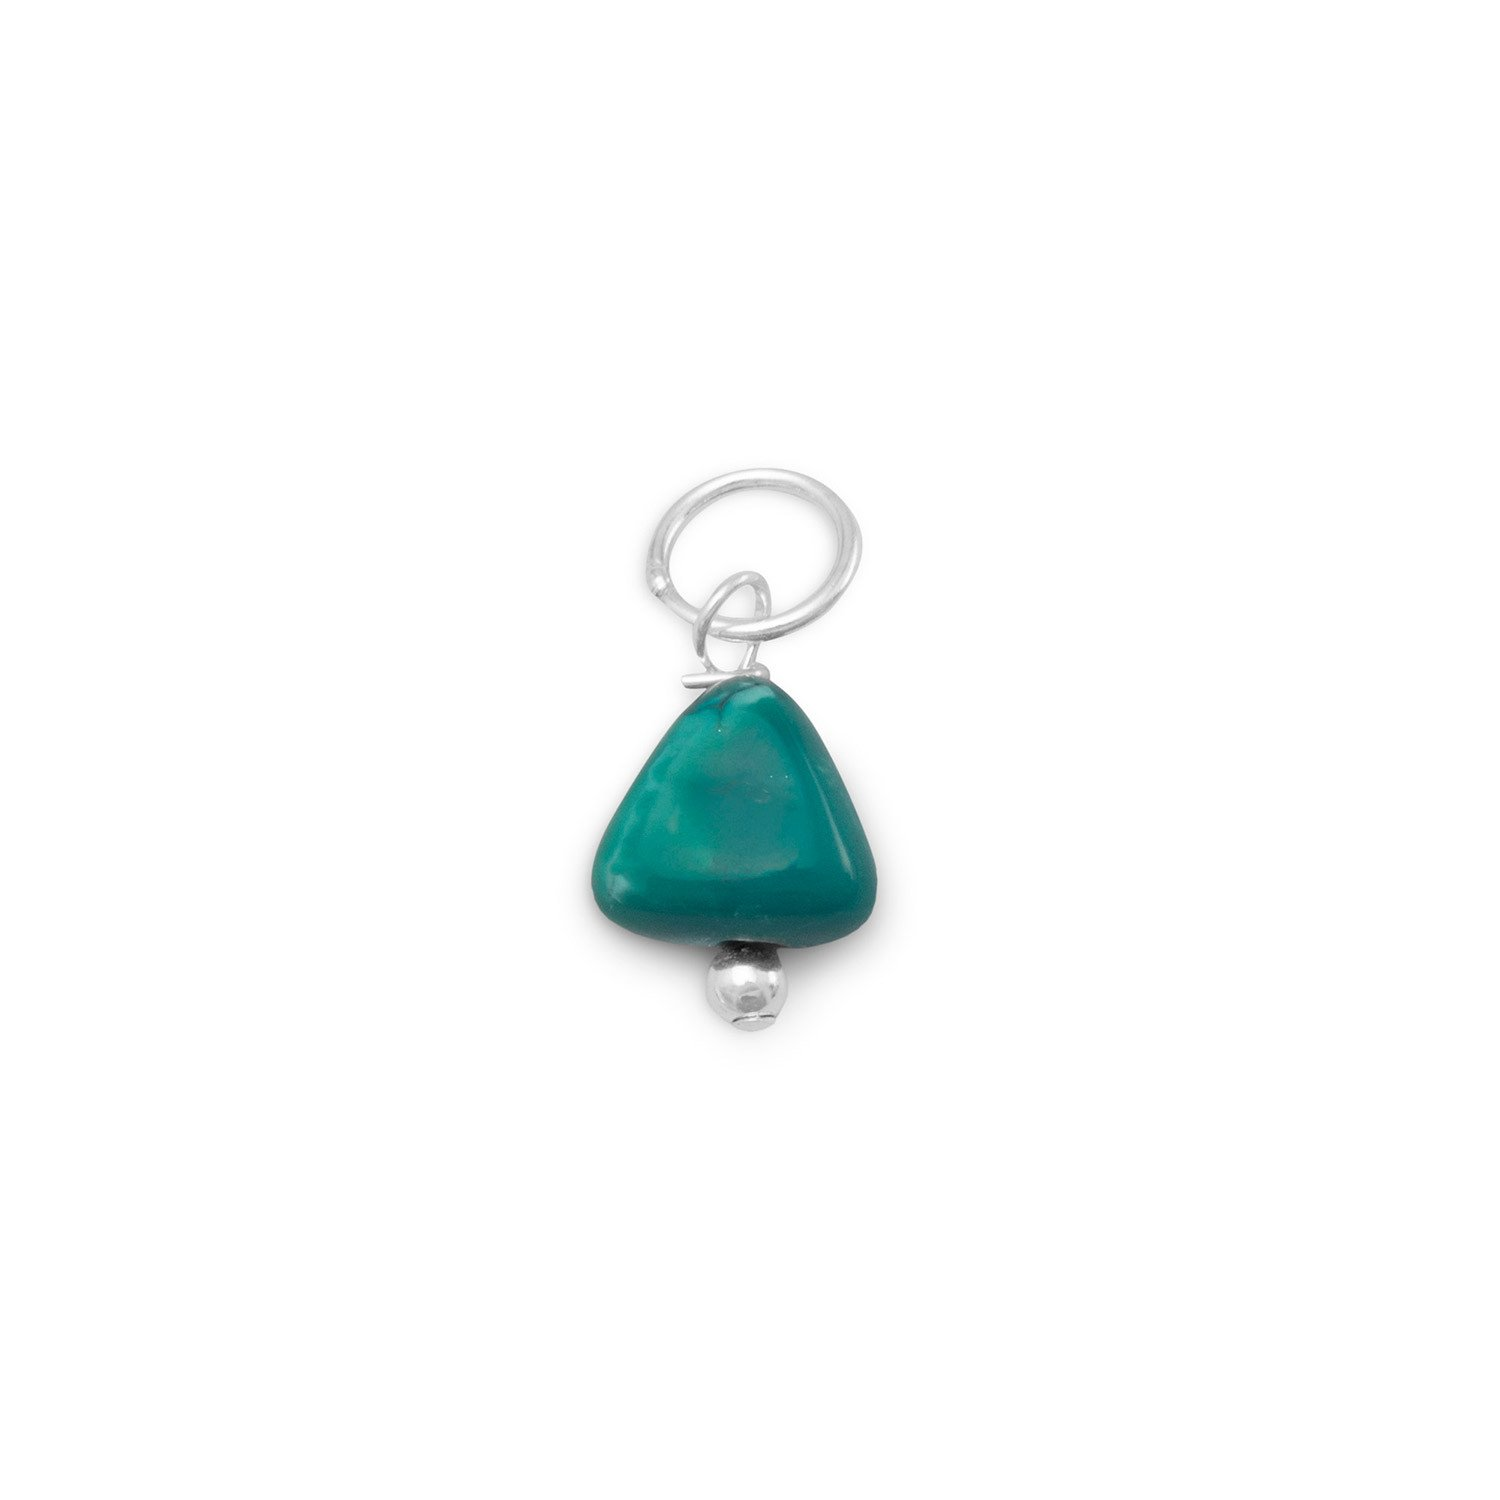 Reconstituted Turquoise Nugget Charm – December Birthstone